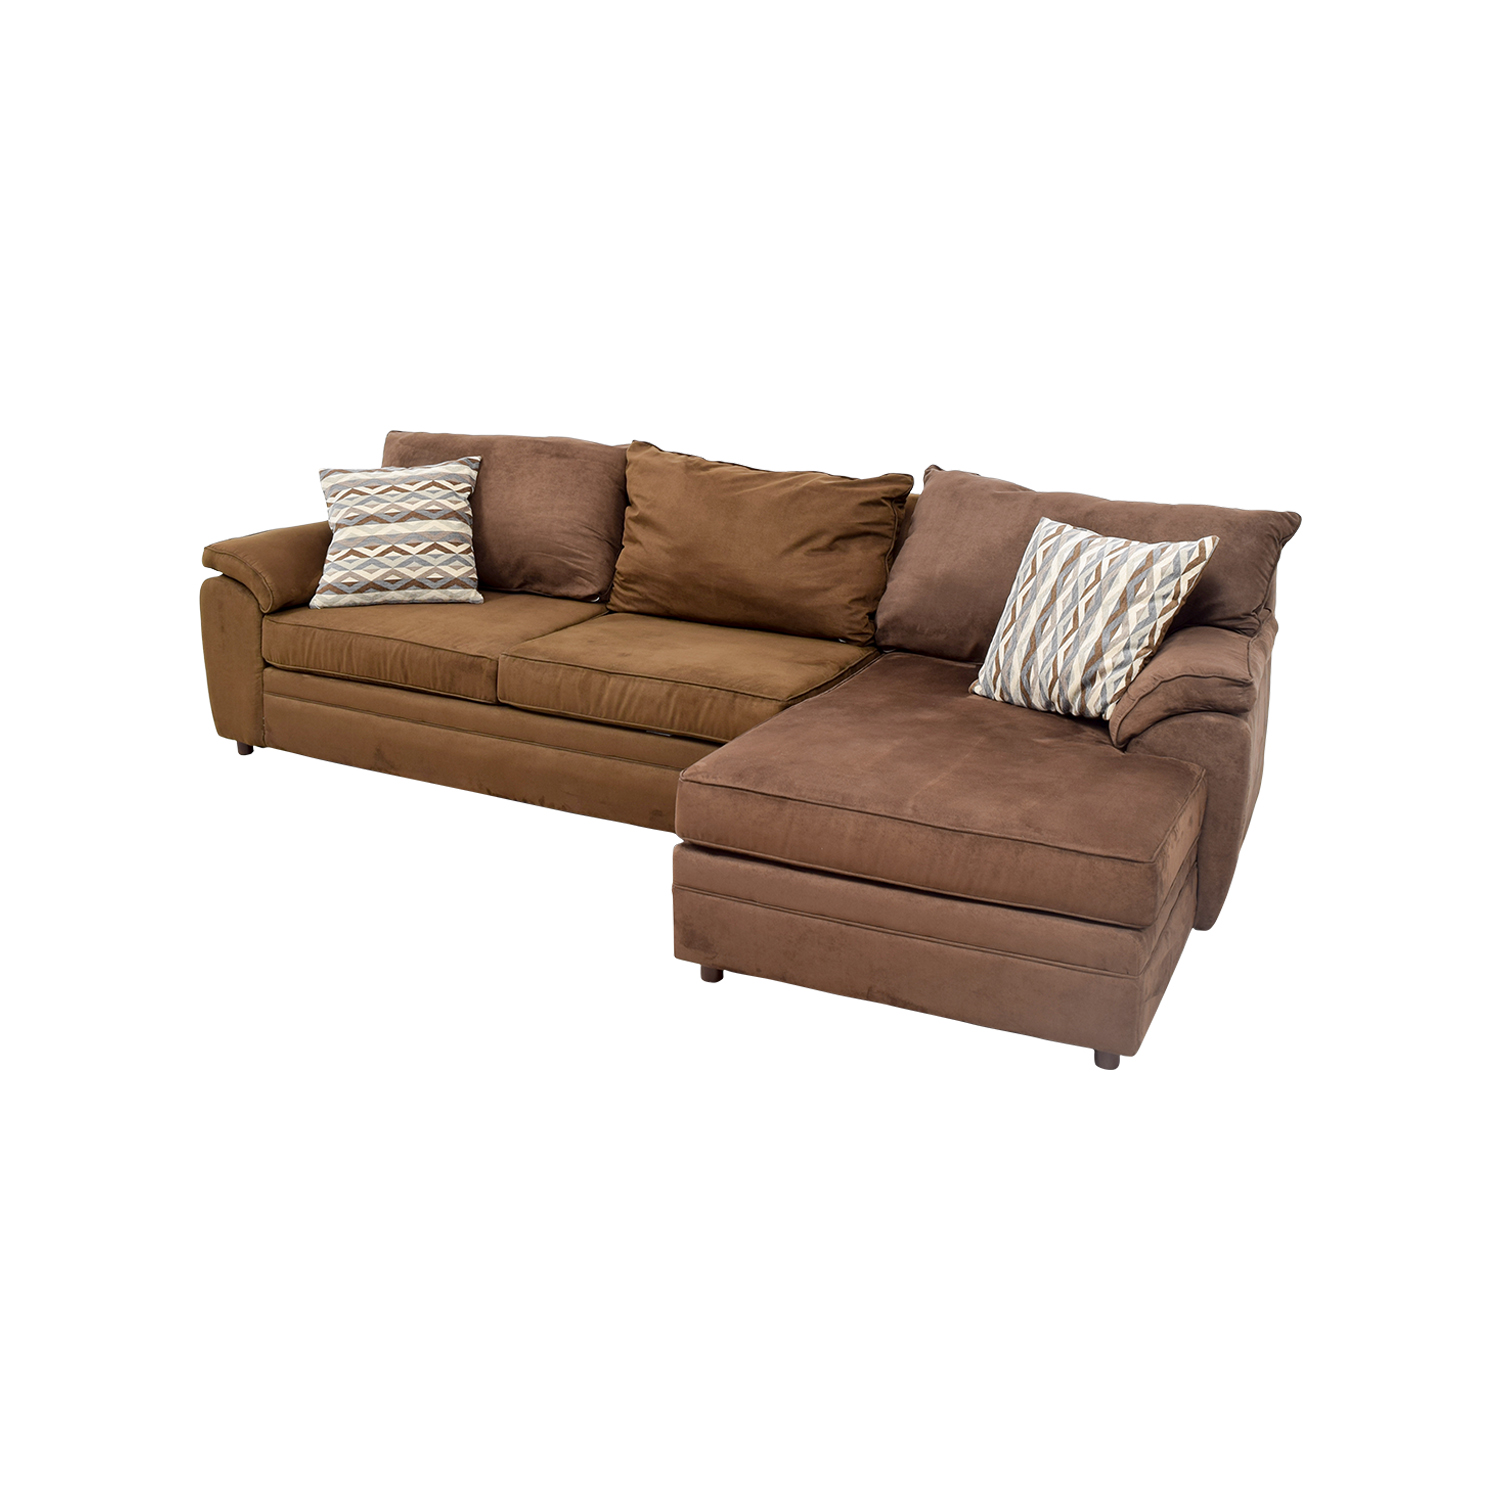 46 off bob 39 s furniture bob 39 s furniture brown chaise for Brown chaise sofa